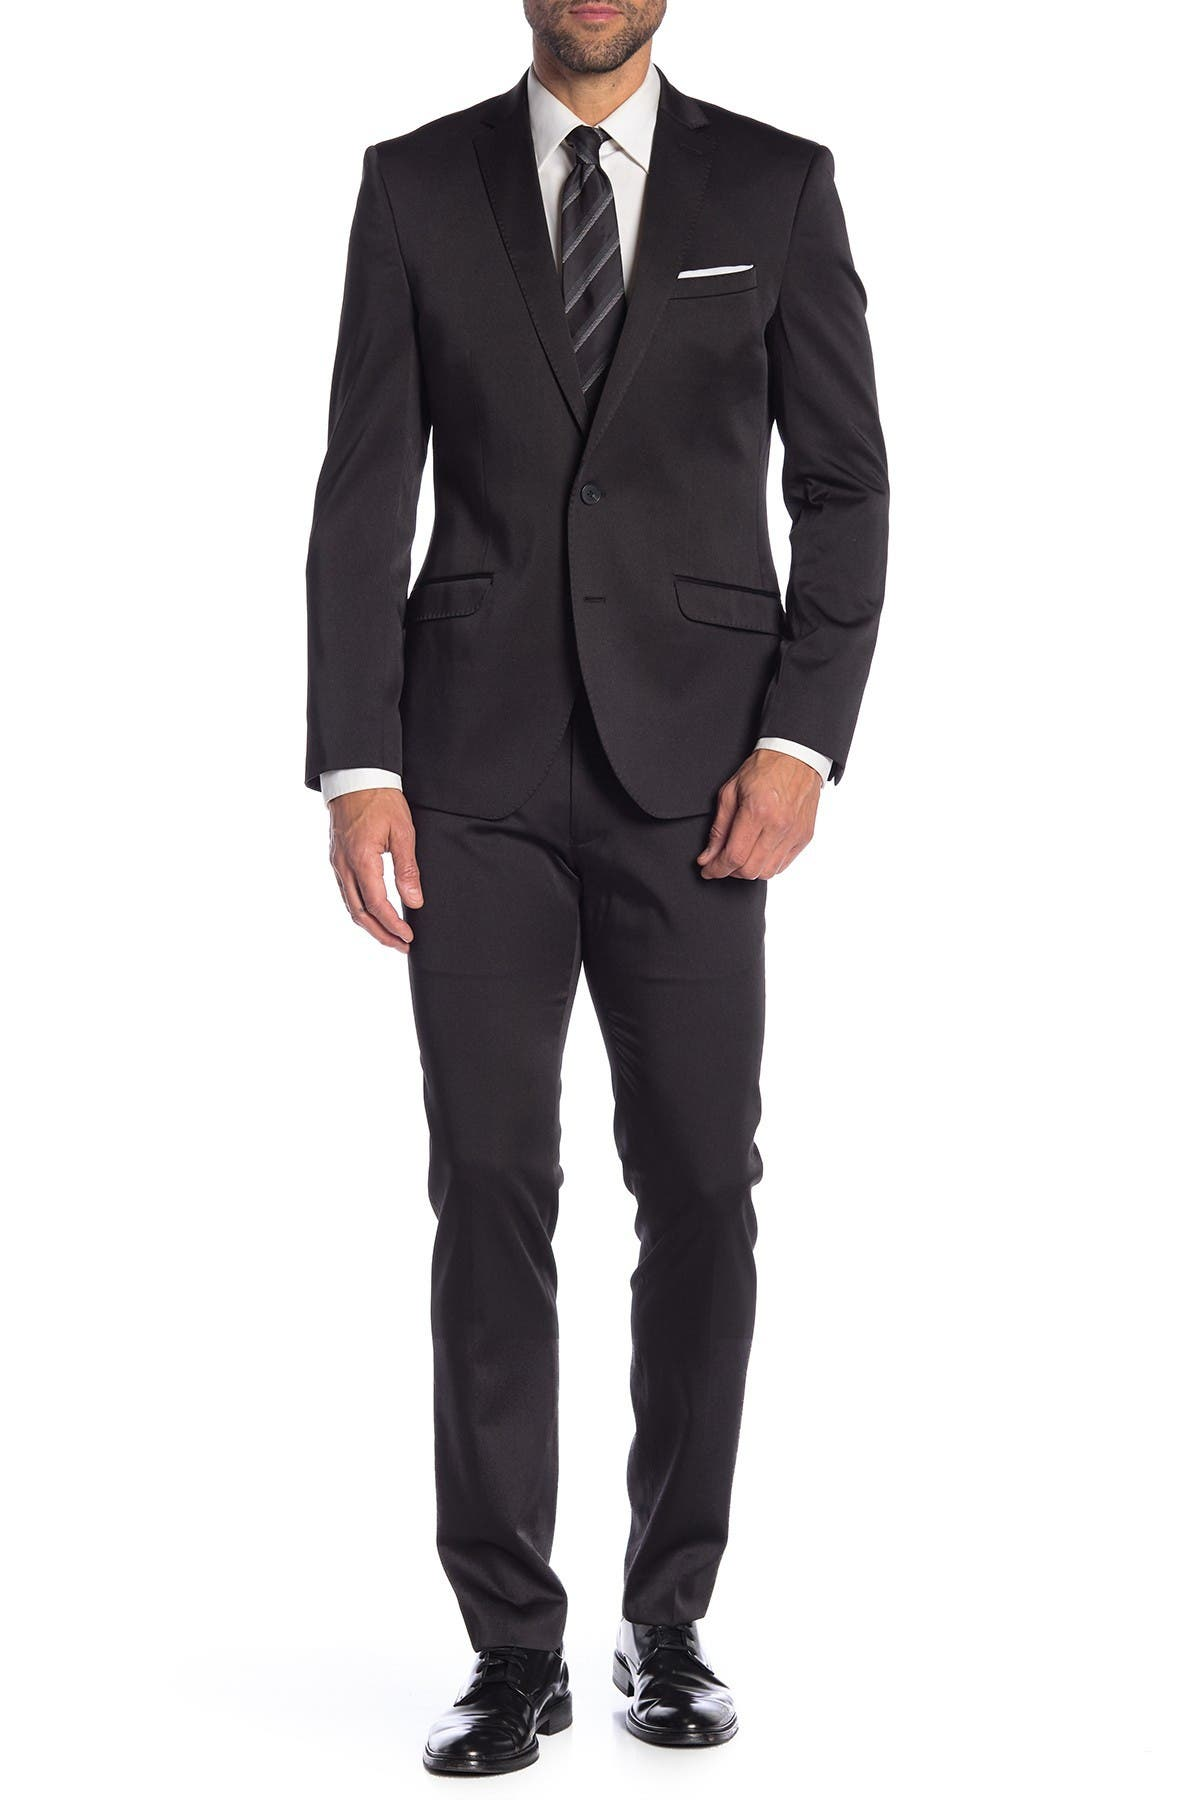 Image of Kenneth Cole Reaction Black Solid Two Button Notch Lapel Slim Fit Suit